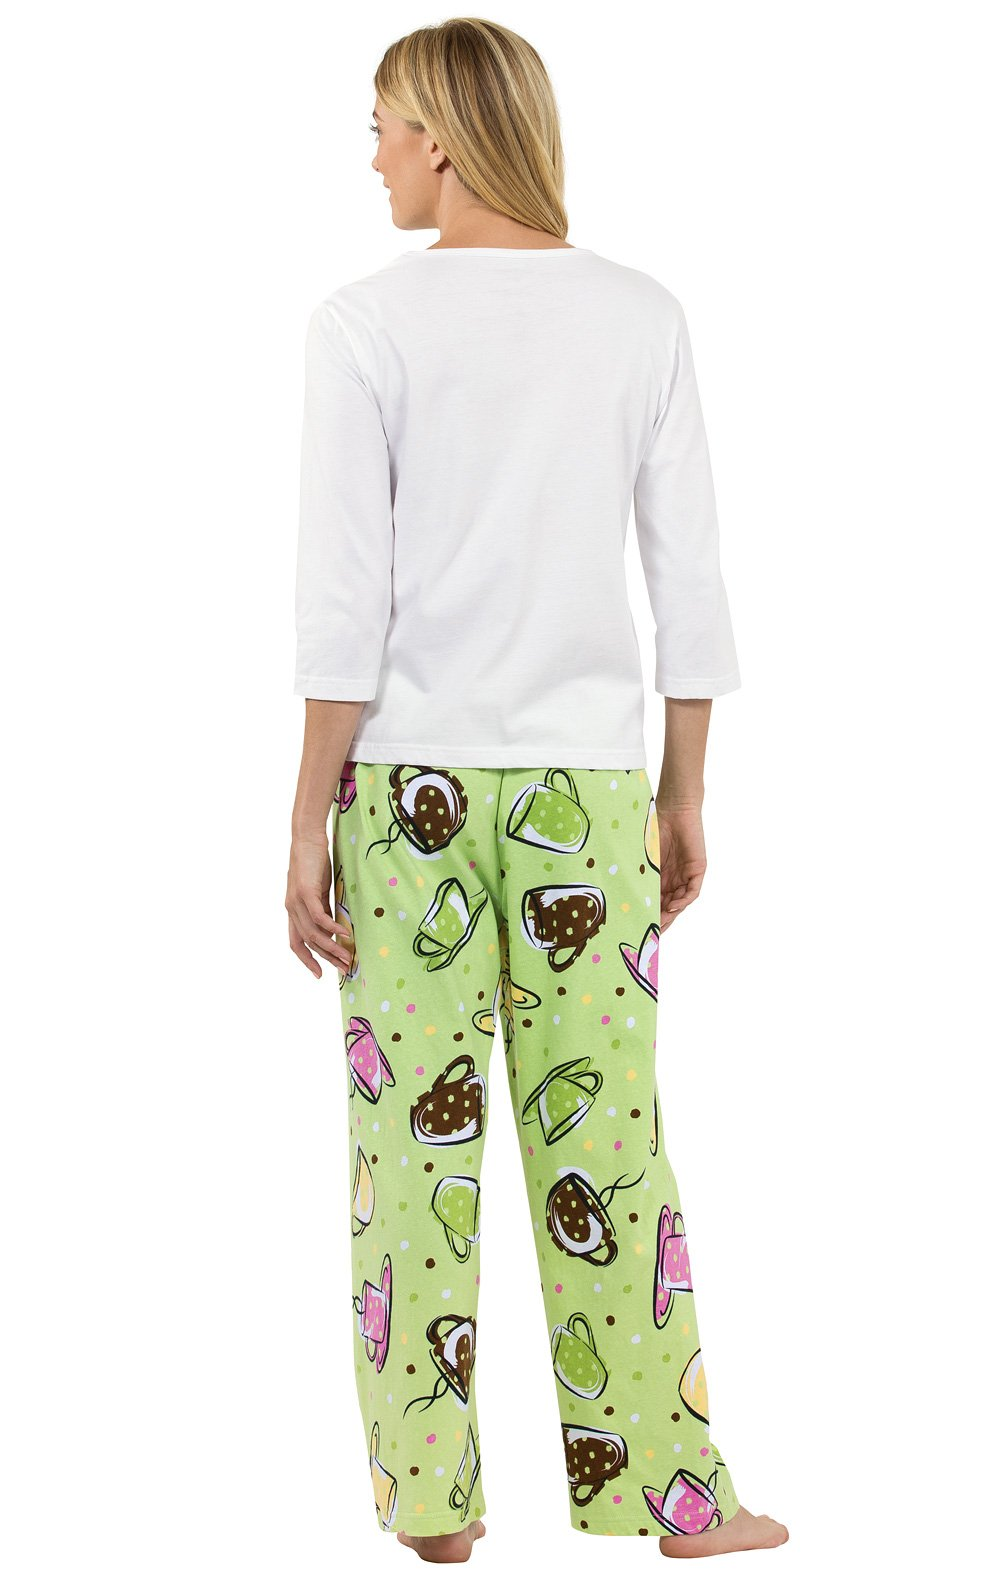 Pajamagram Cute Pajamas For Women - Cotton, I Need Coffee Print, Green -